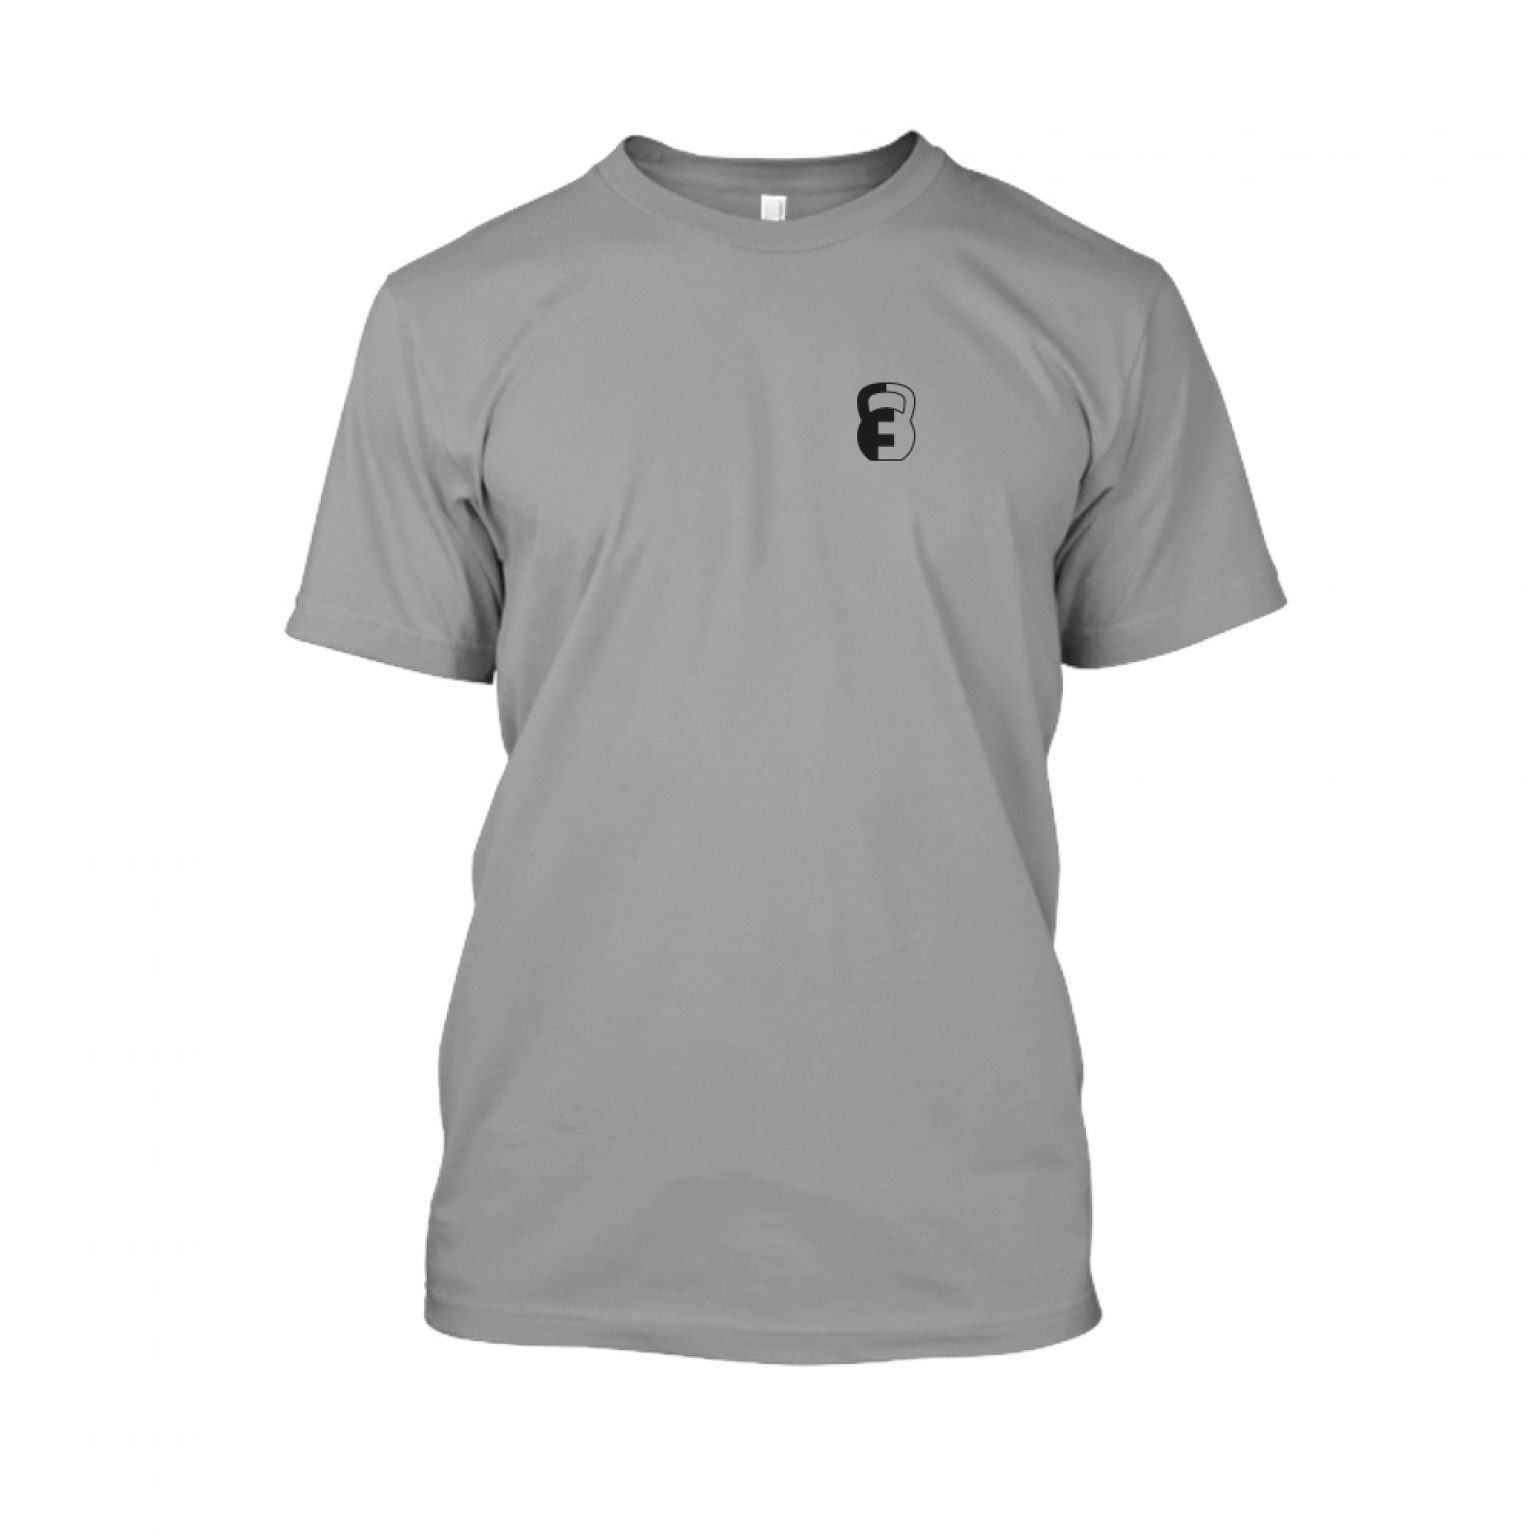 Luff gray front